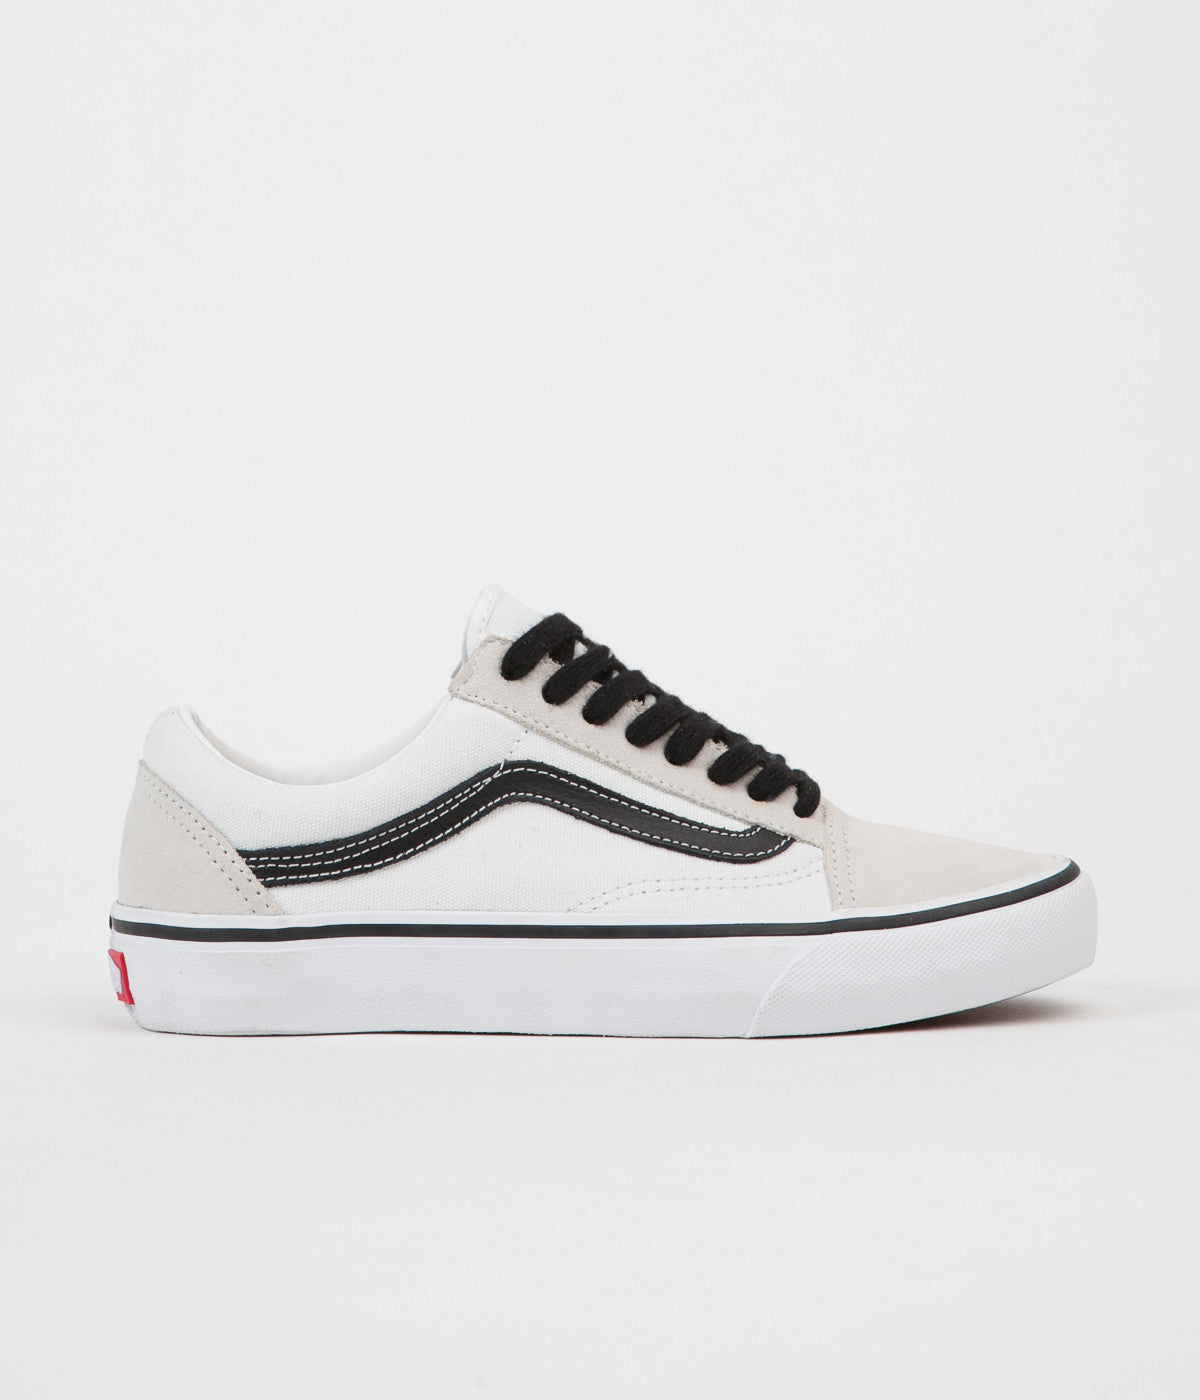 Vans 50th Old Skool Pro  92 Shoes - White   Black  8a370404533b